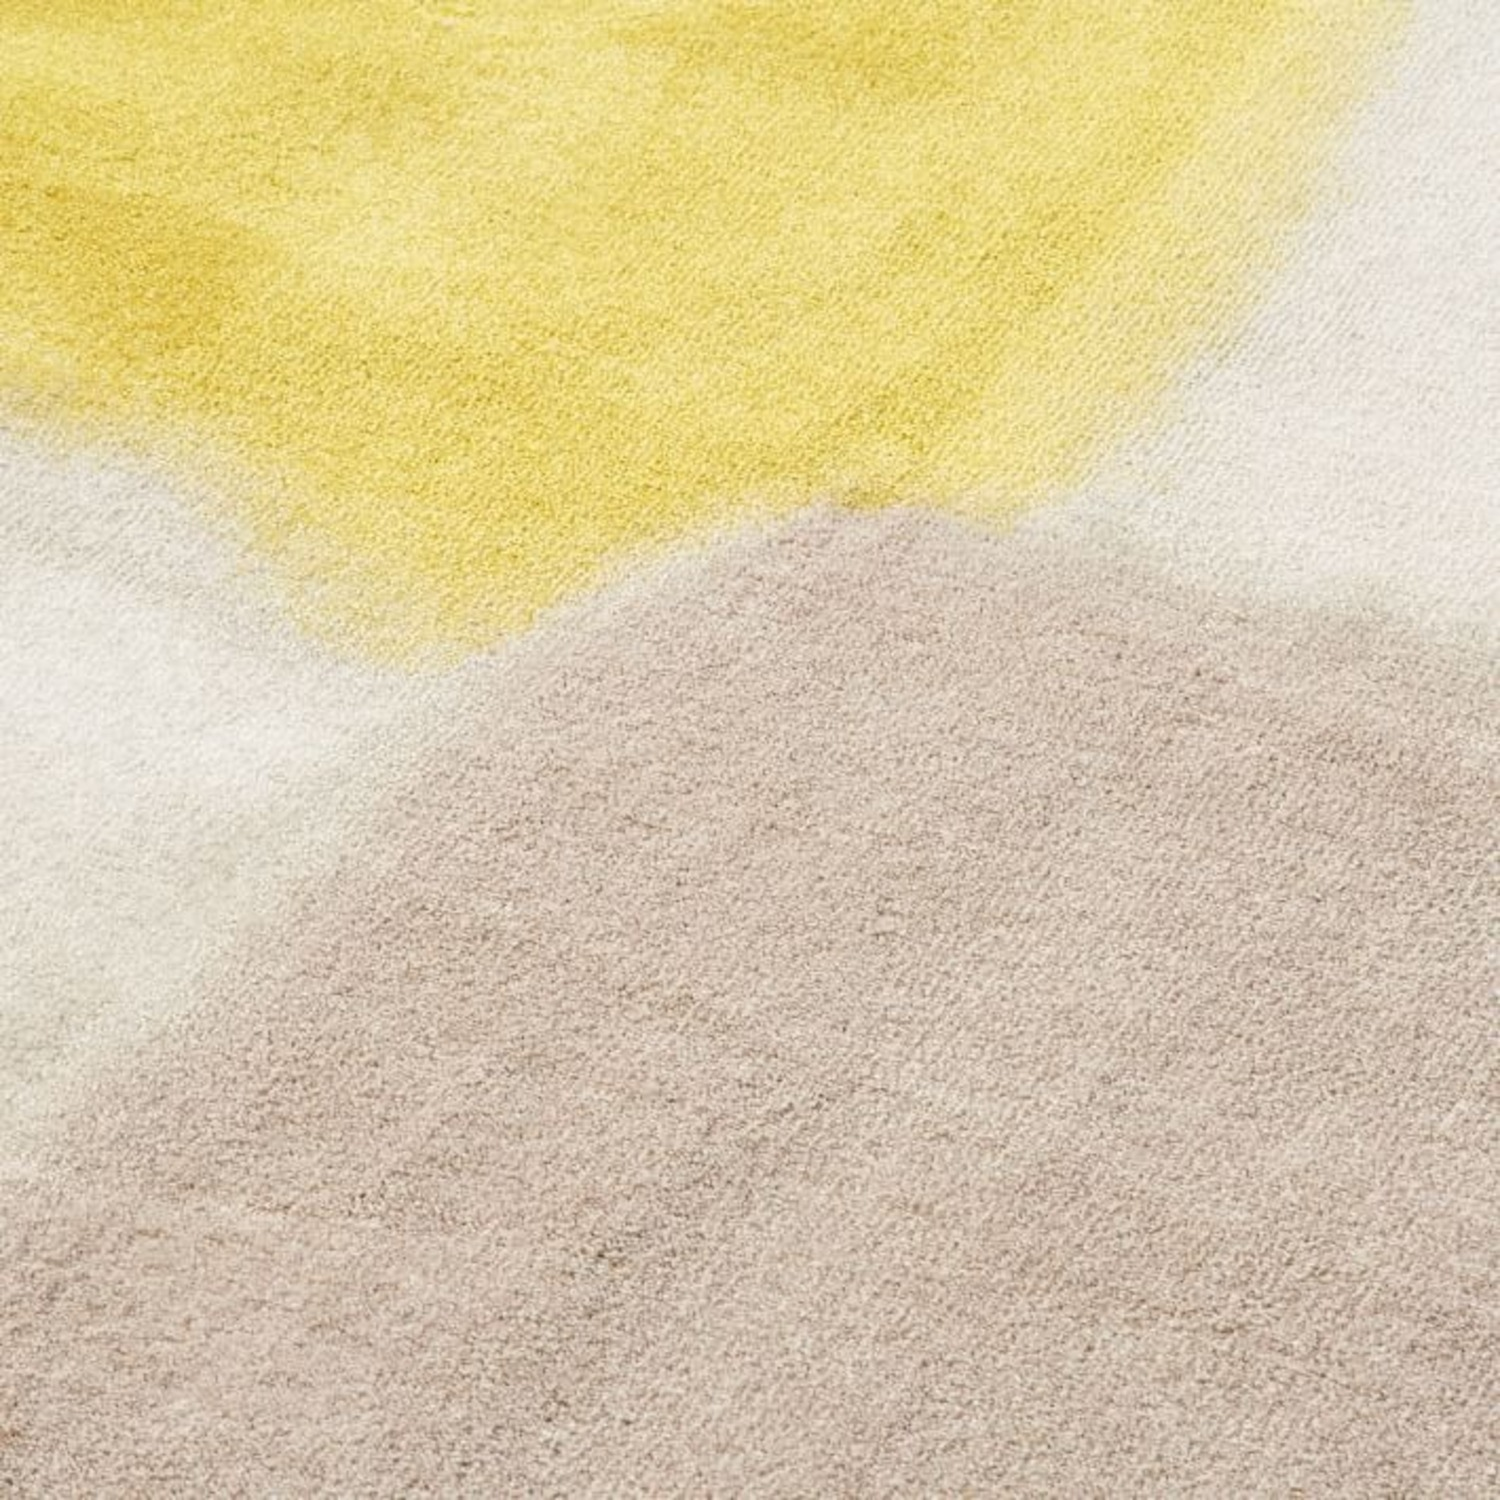 West Elm Area Rug 5' x 8' Frost Gray + Yellow - image-2